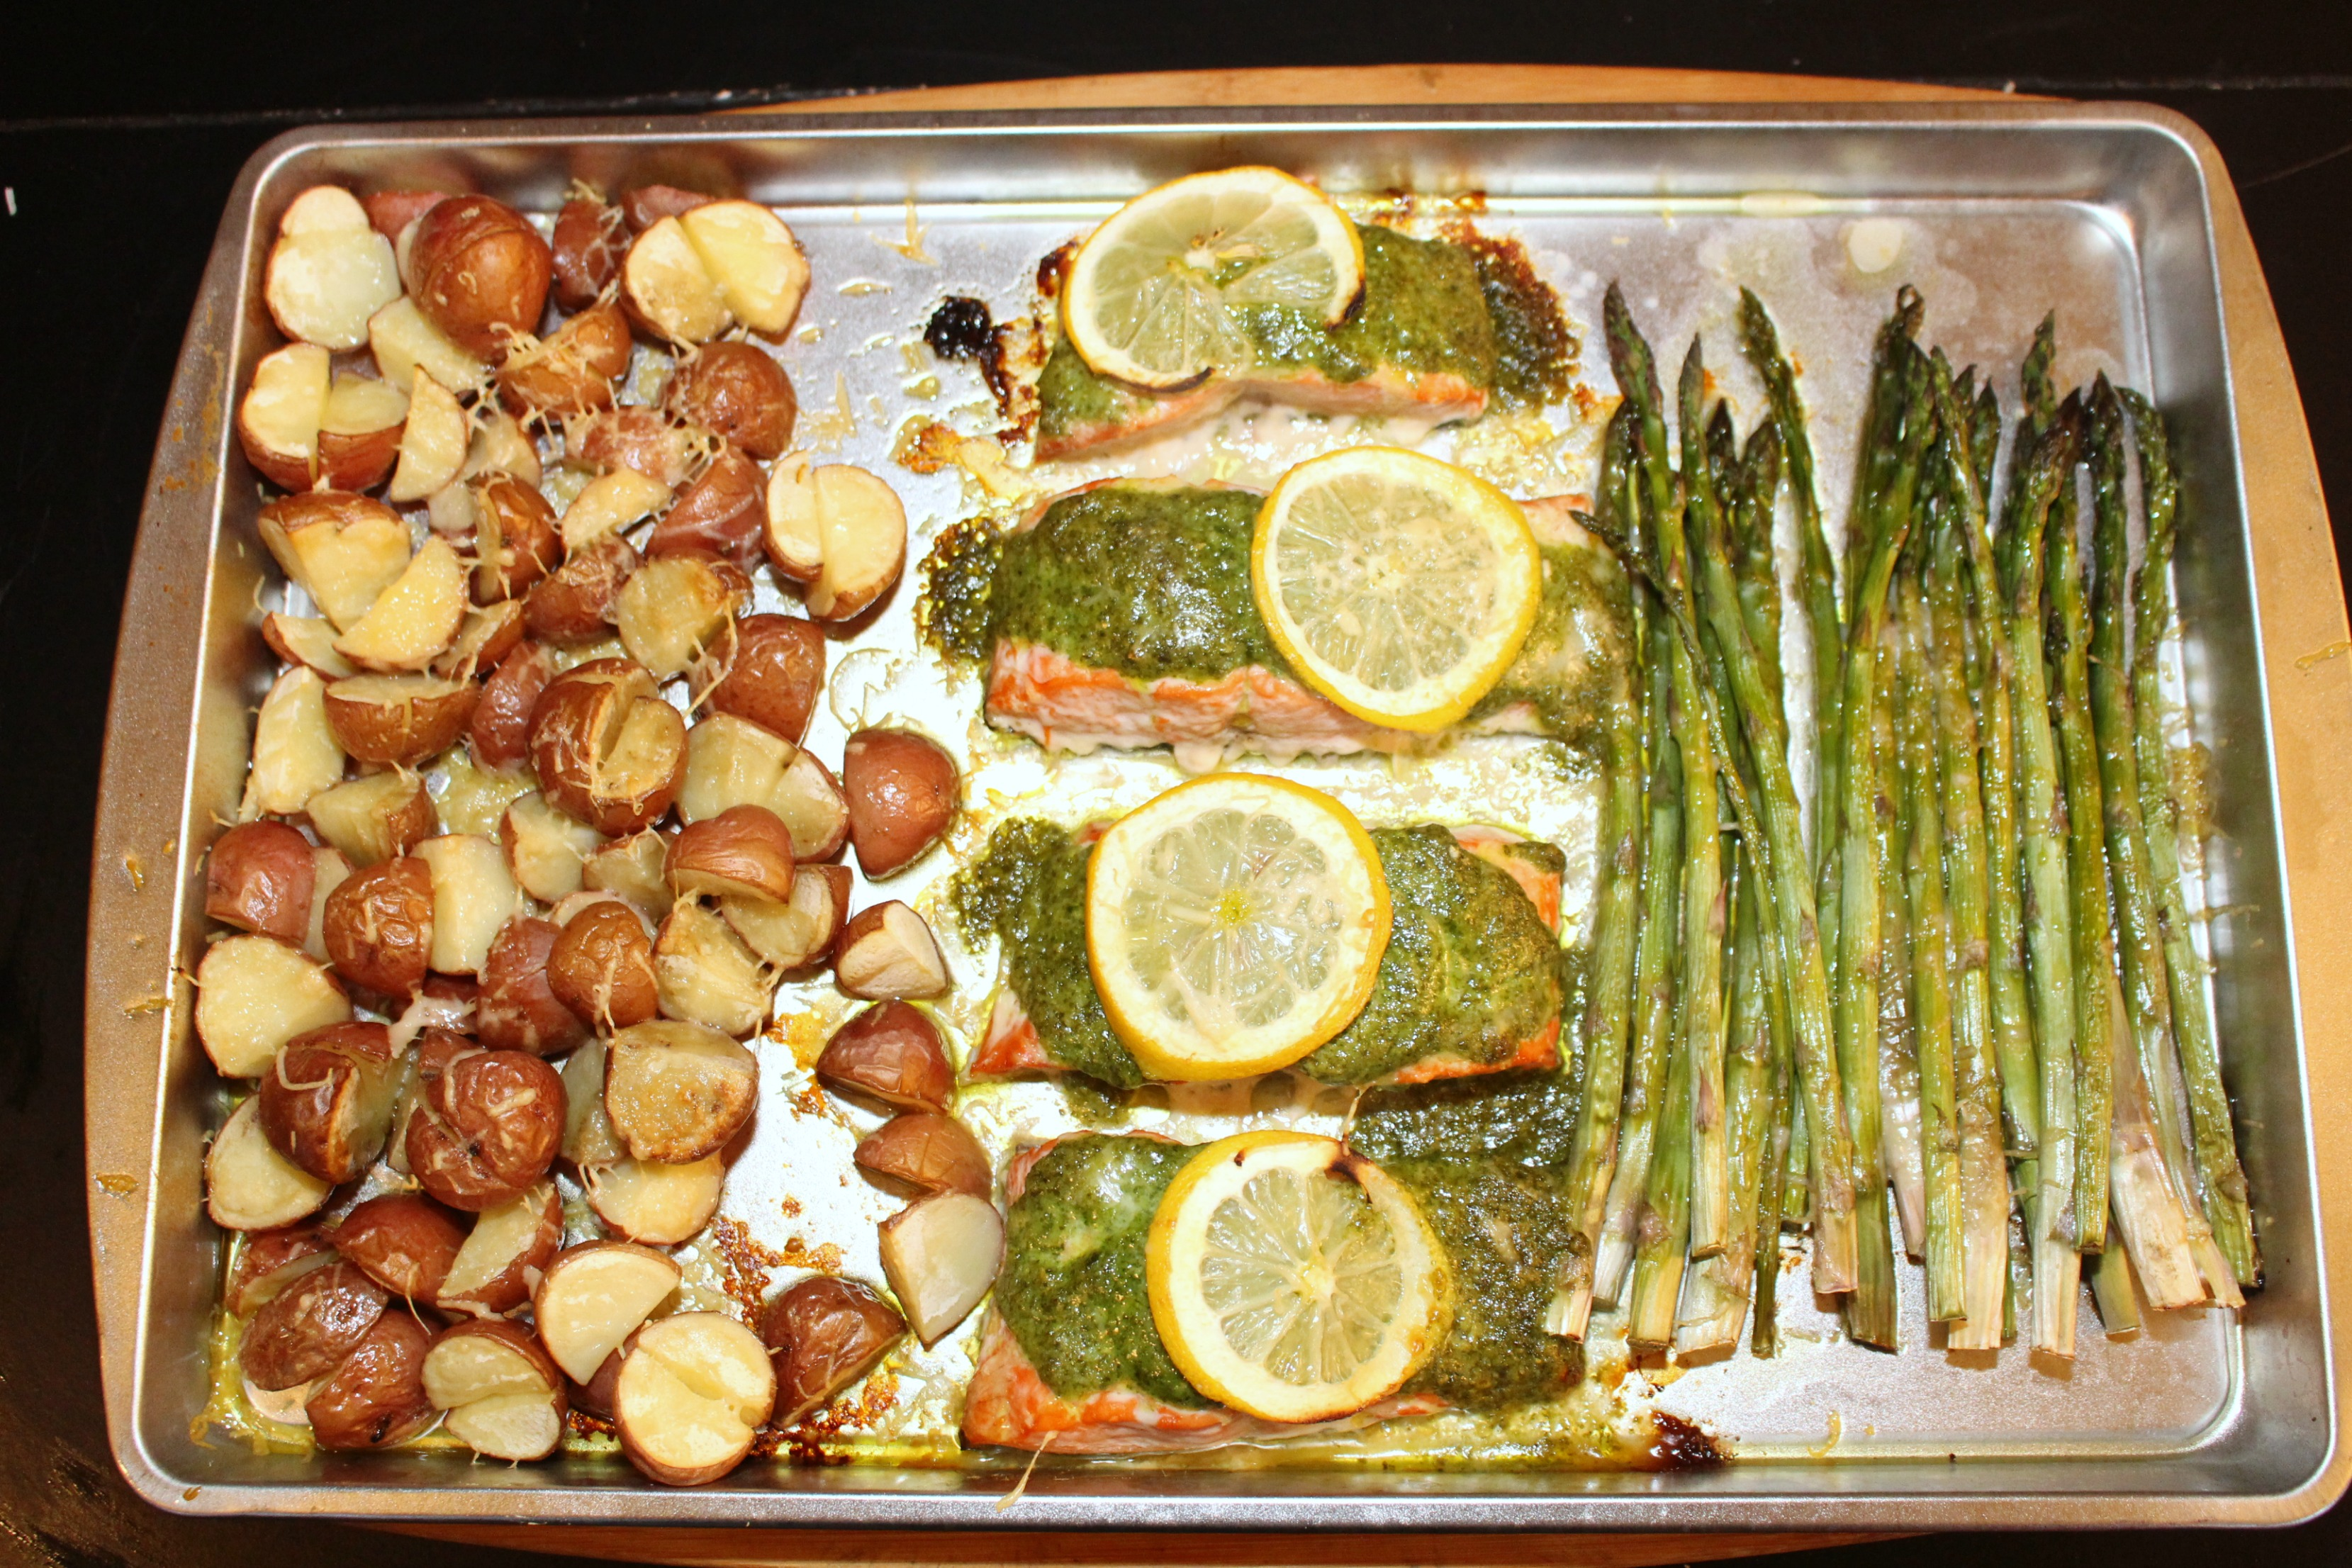 Pesto Salmon with Parmesan Roasted Potatoes